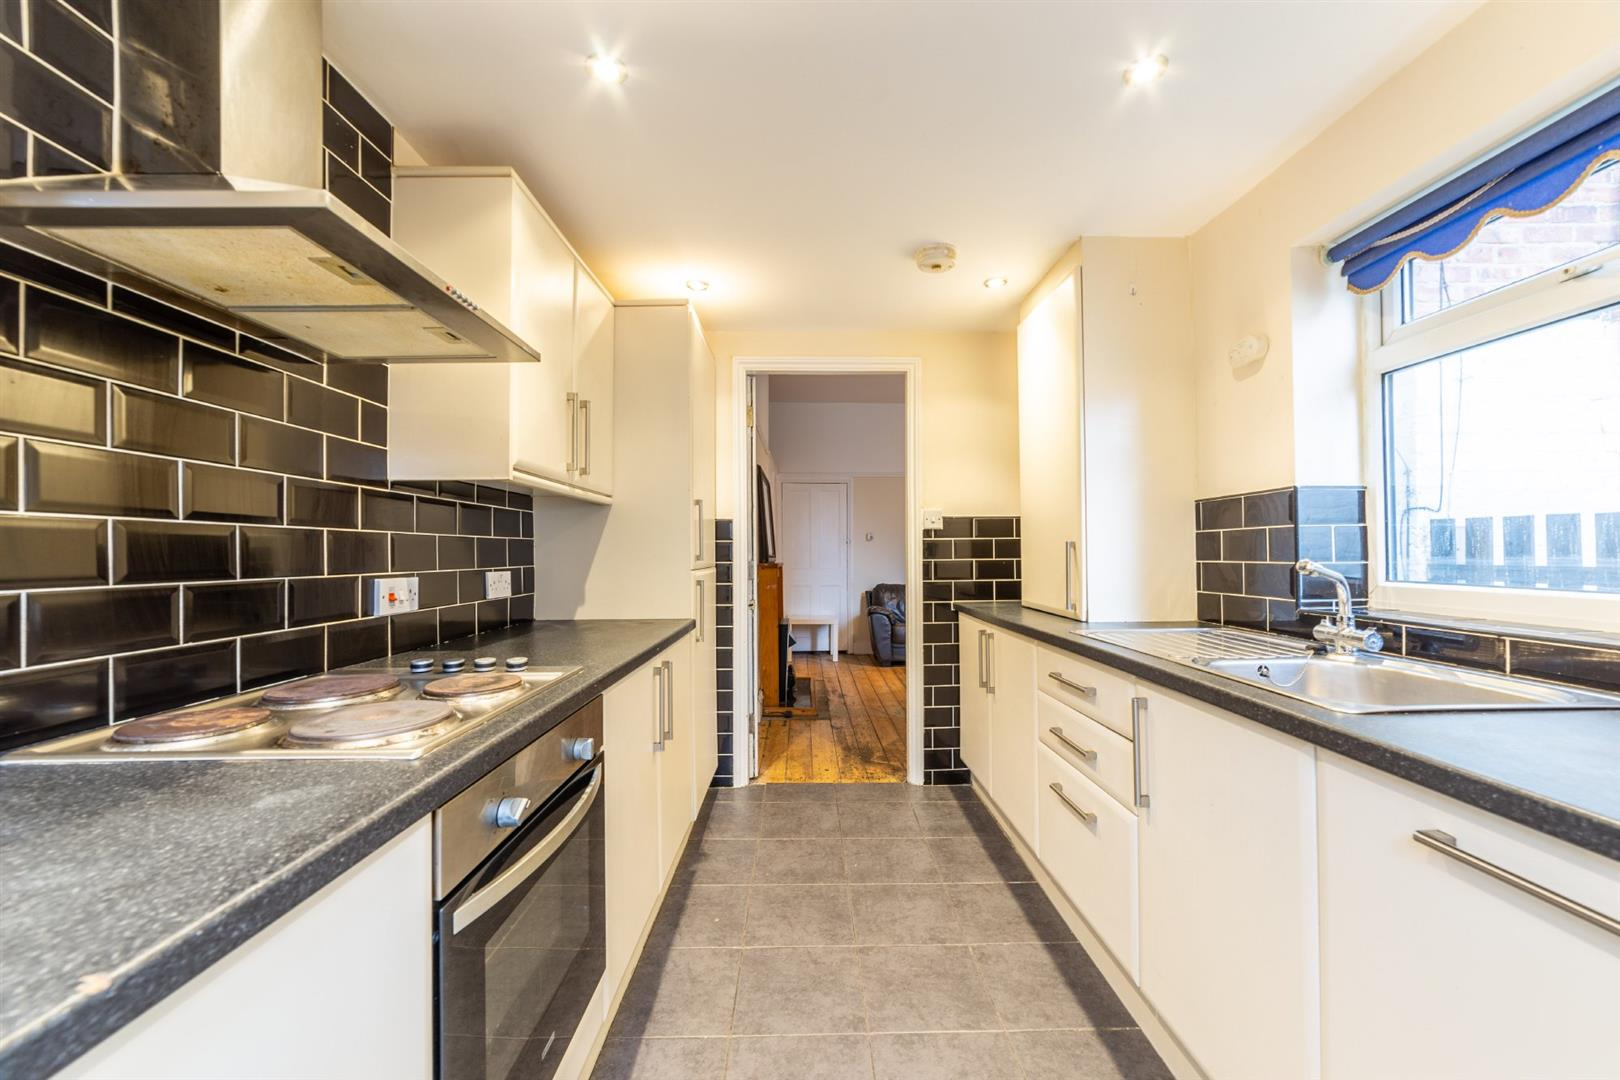 4 bed terraced house to rent in Newcastle Upon Tyne, NE6 5XX, NE6